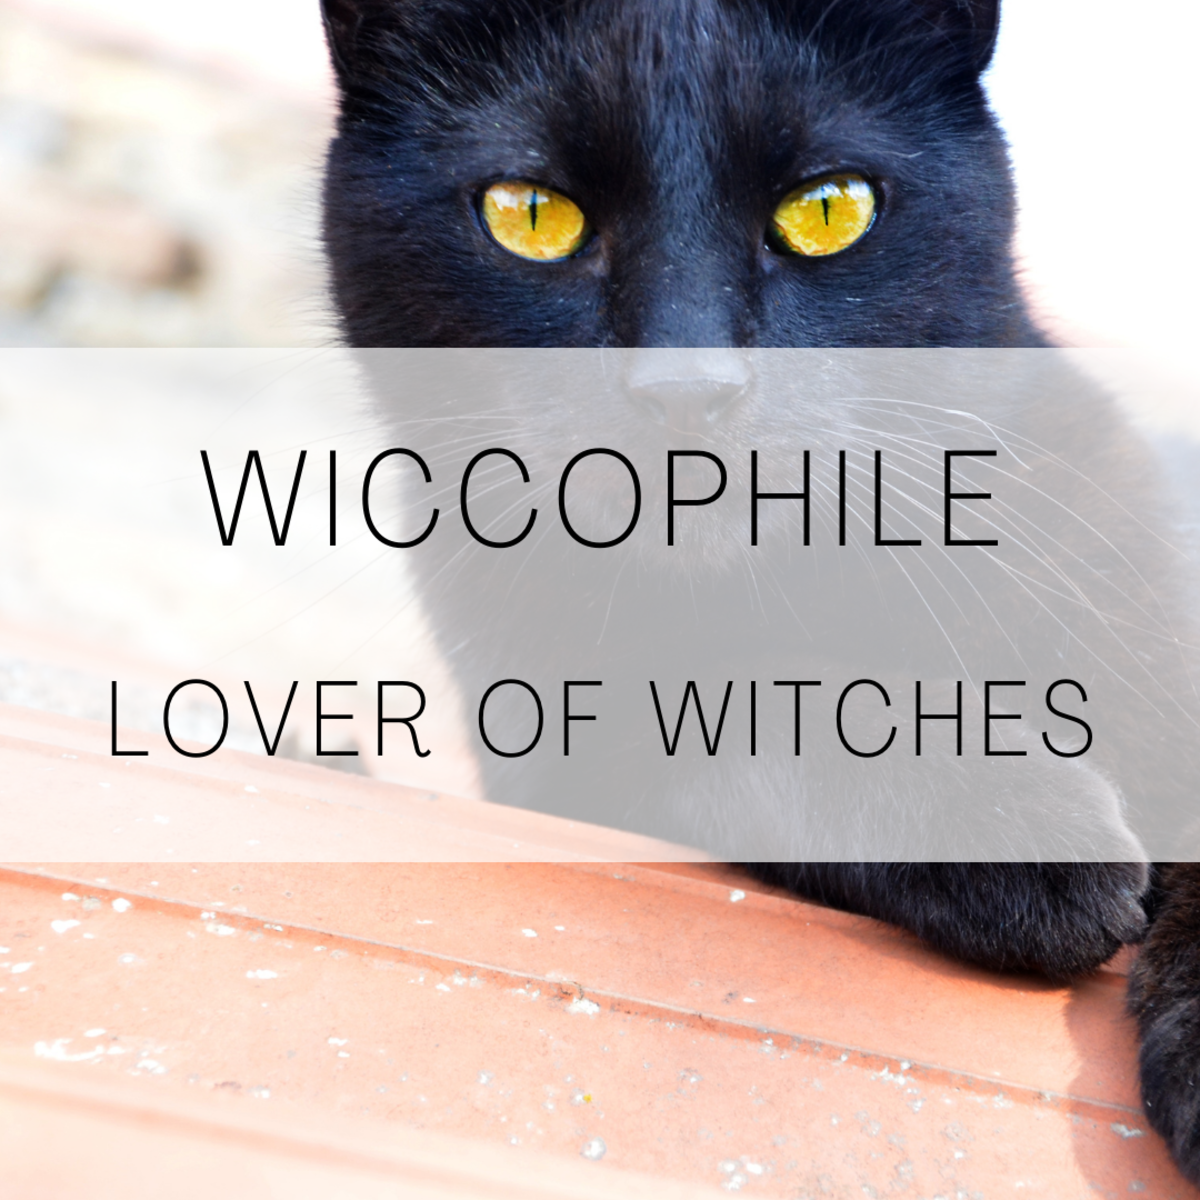 Wiccophile, a lover of witches